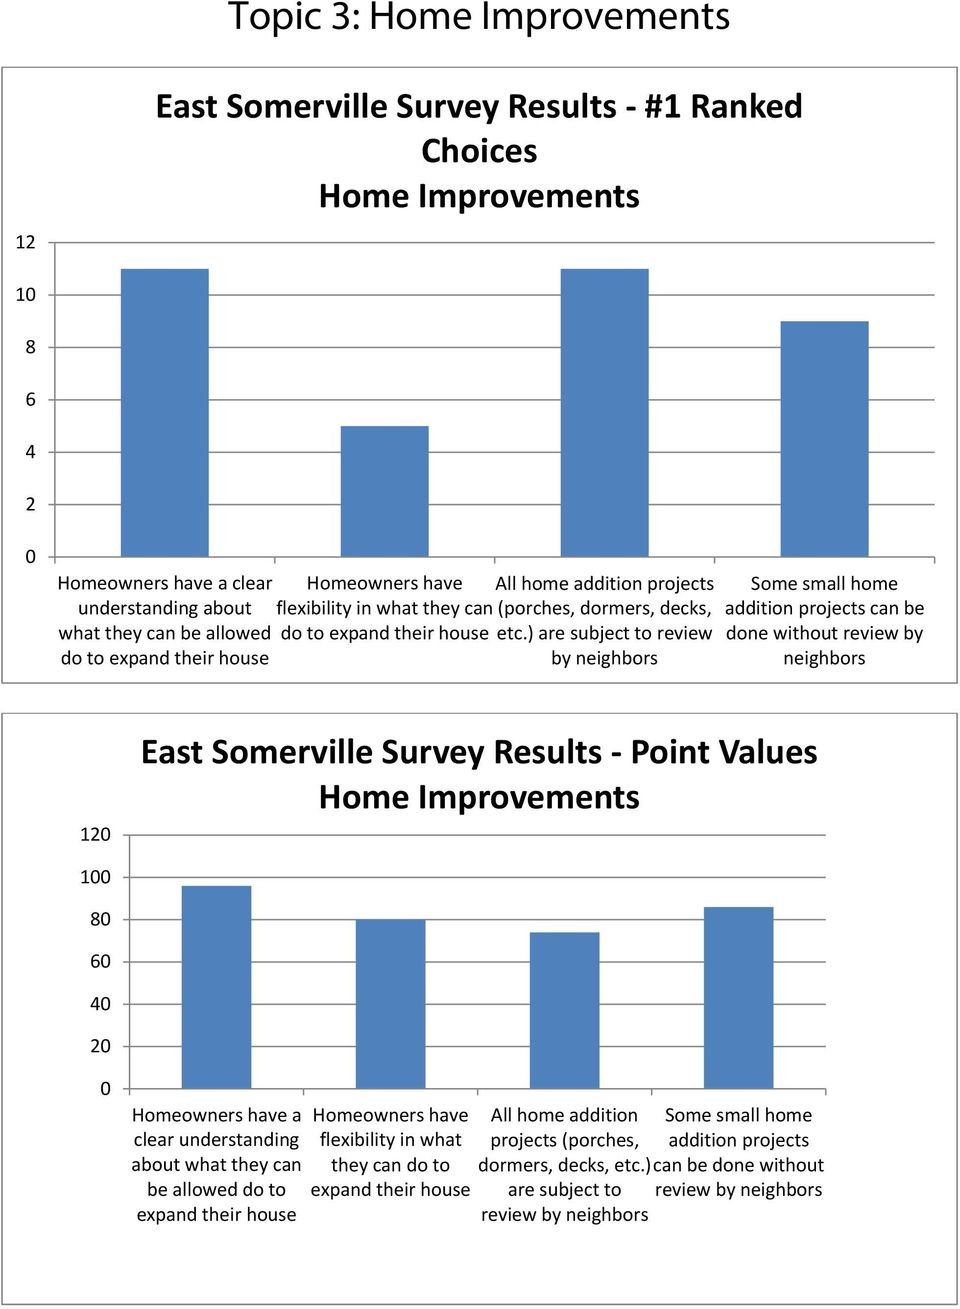 ) are subject to review by neighbors Some small home addition projects can be done without review by neighbors 12 Survey Results Point Values Home Improvements 1 8 6 4 2 Homeowners have a clear